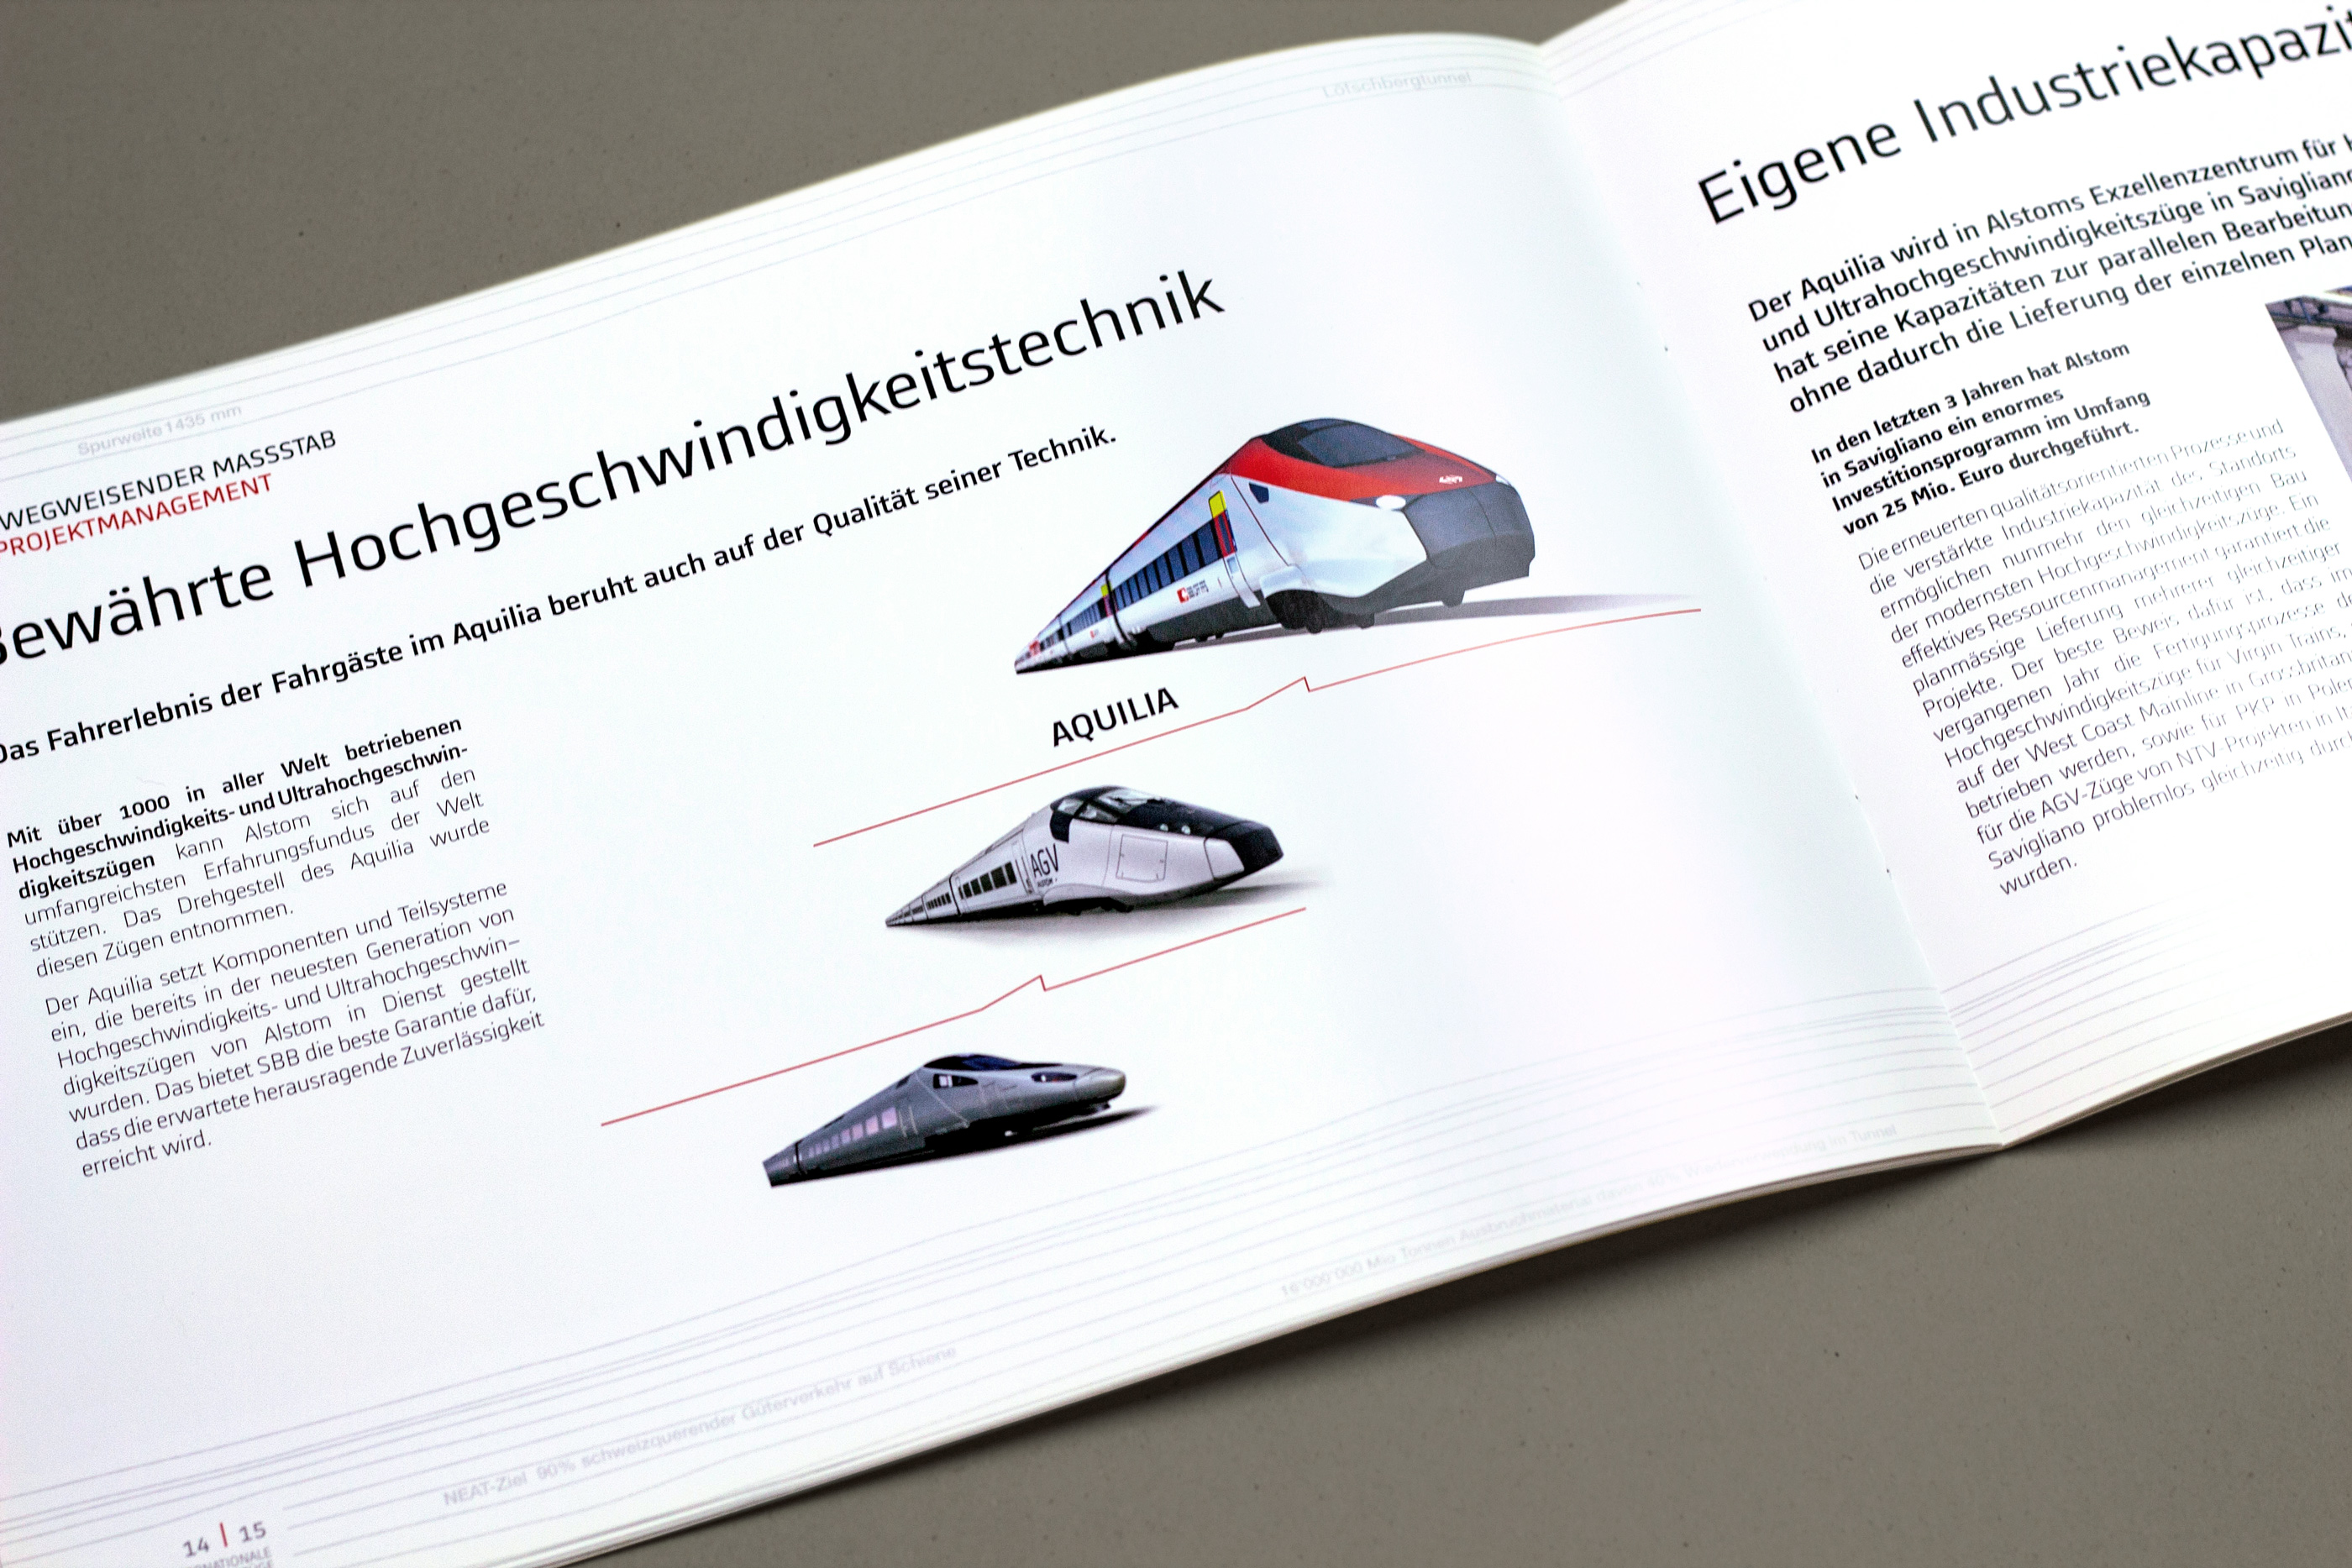 Alstom Transport Design book évolution trains